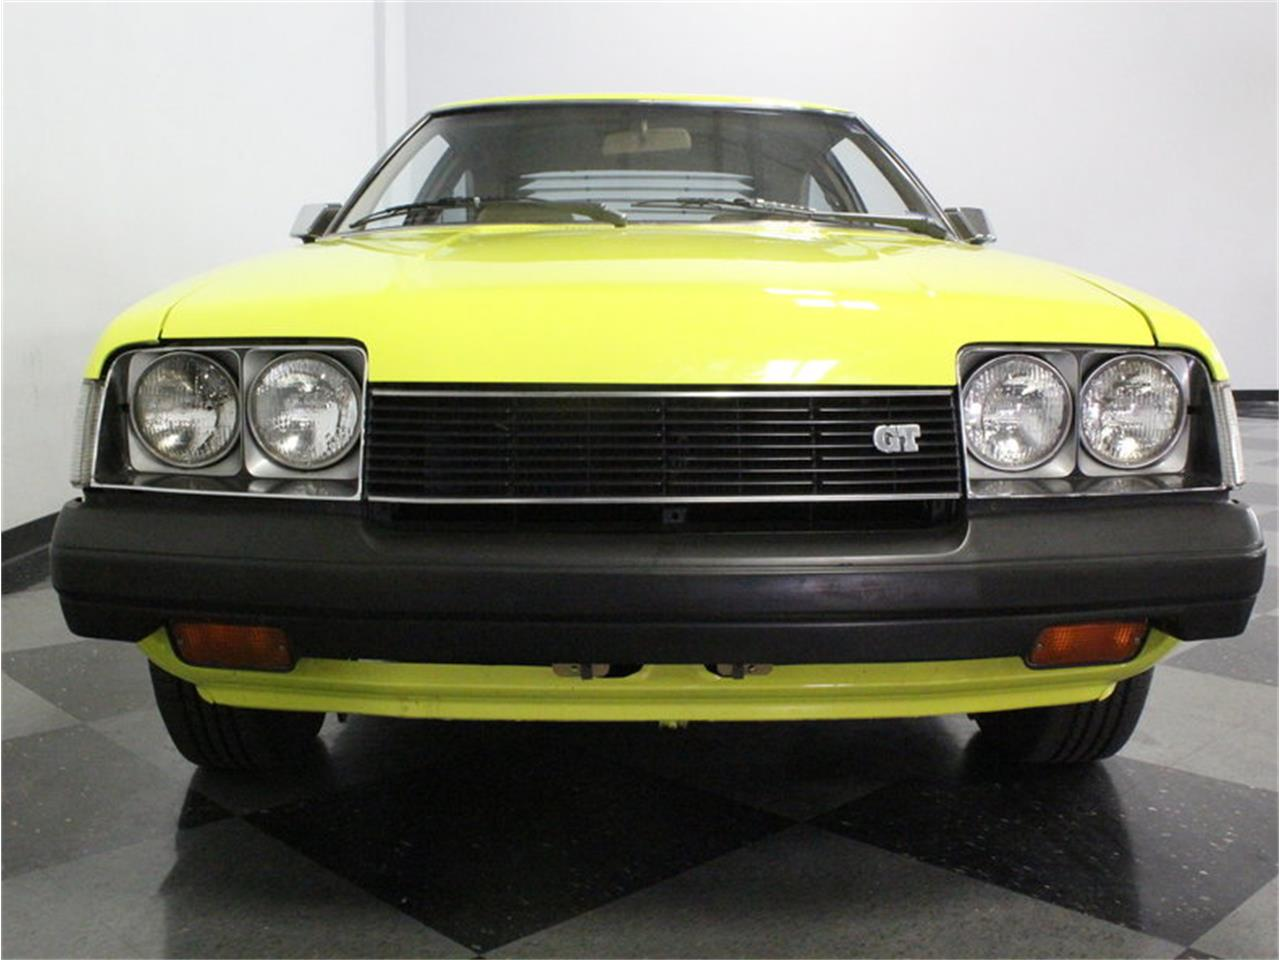 Large Picture of 1978 Toyota Celica located in Texas Offered by Streetside Classics - Dallas / Fort Worth - F6ZC